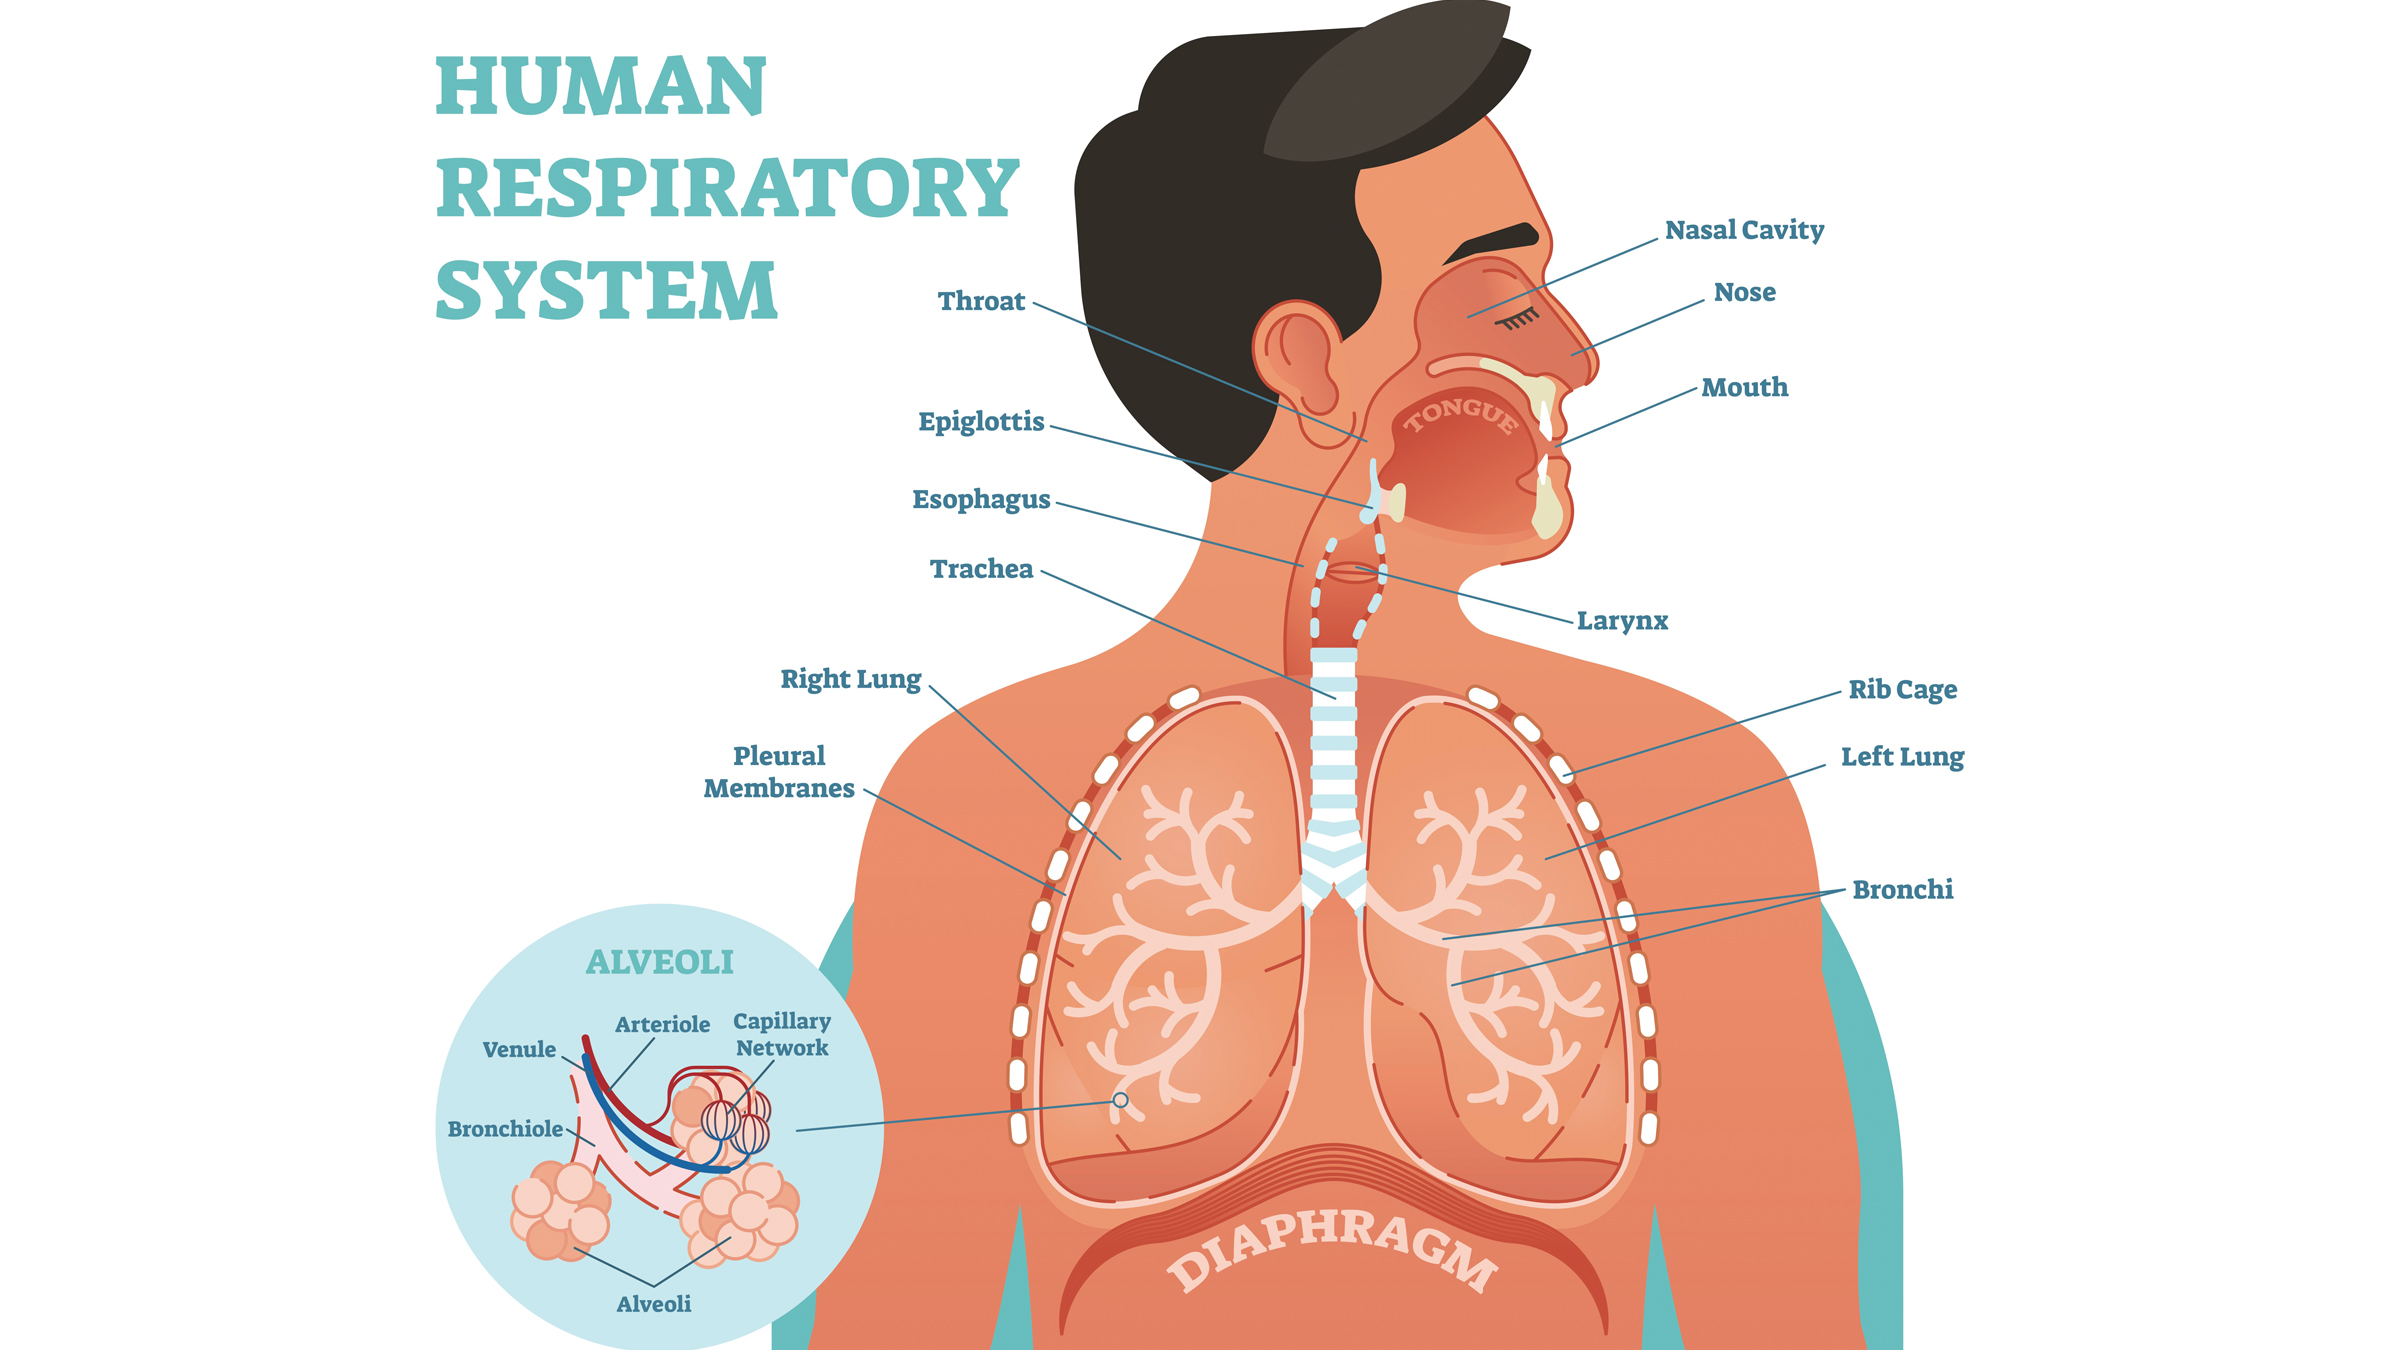 Diagram of the human respiratory system